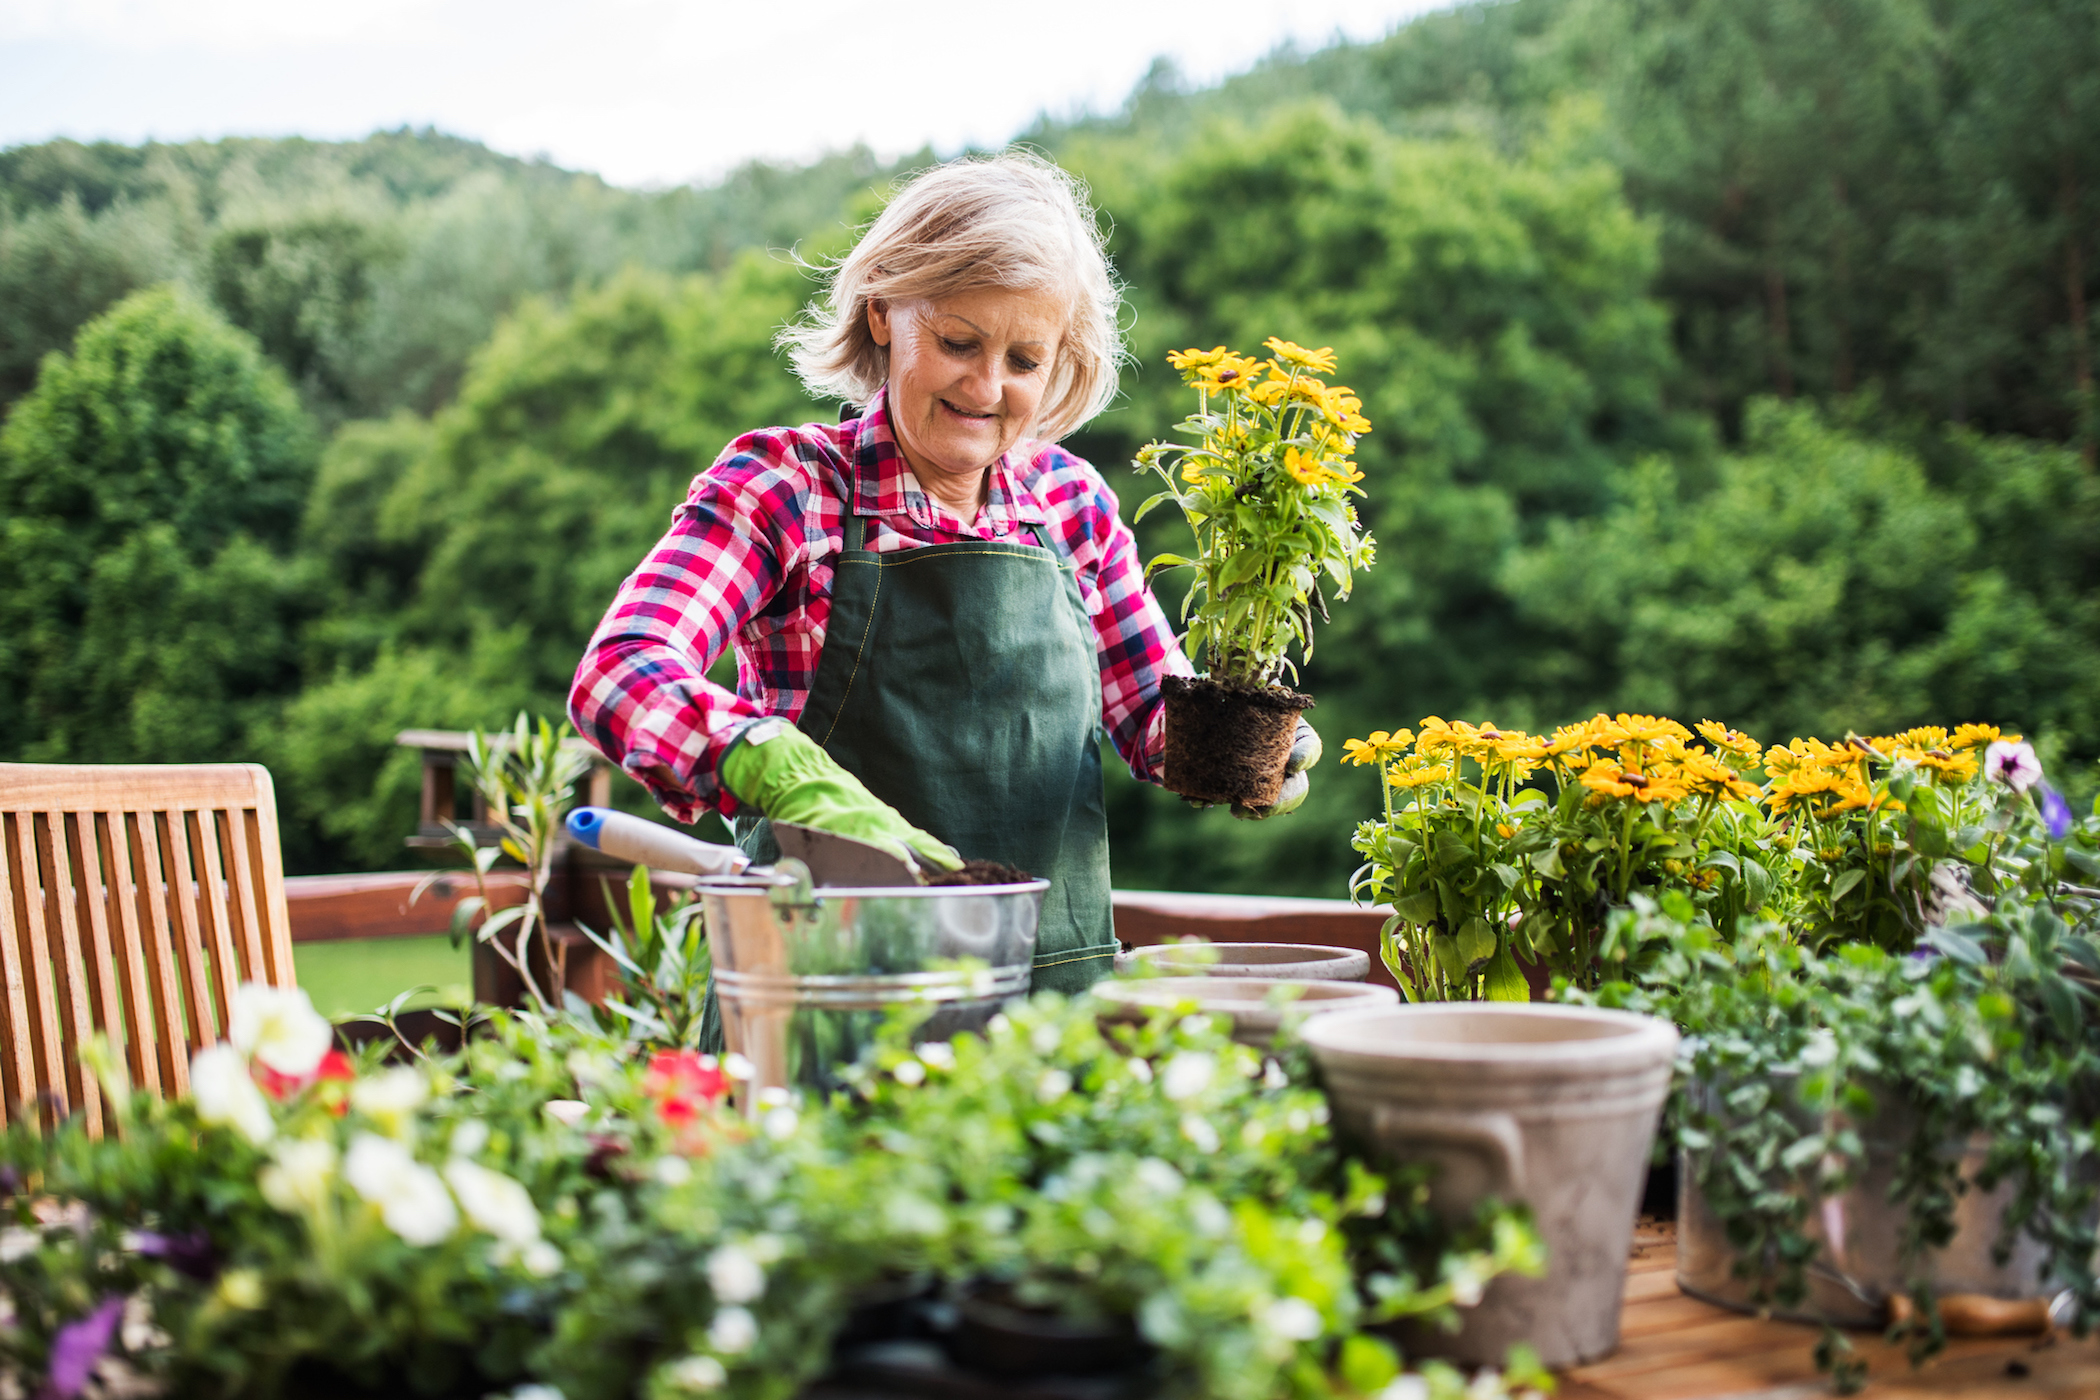 A New Study Says Gardening Has Significant Health Benefits